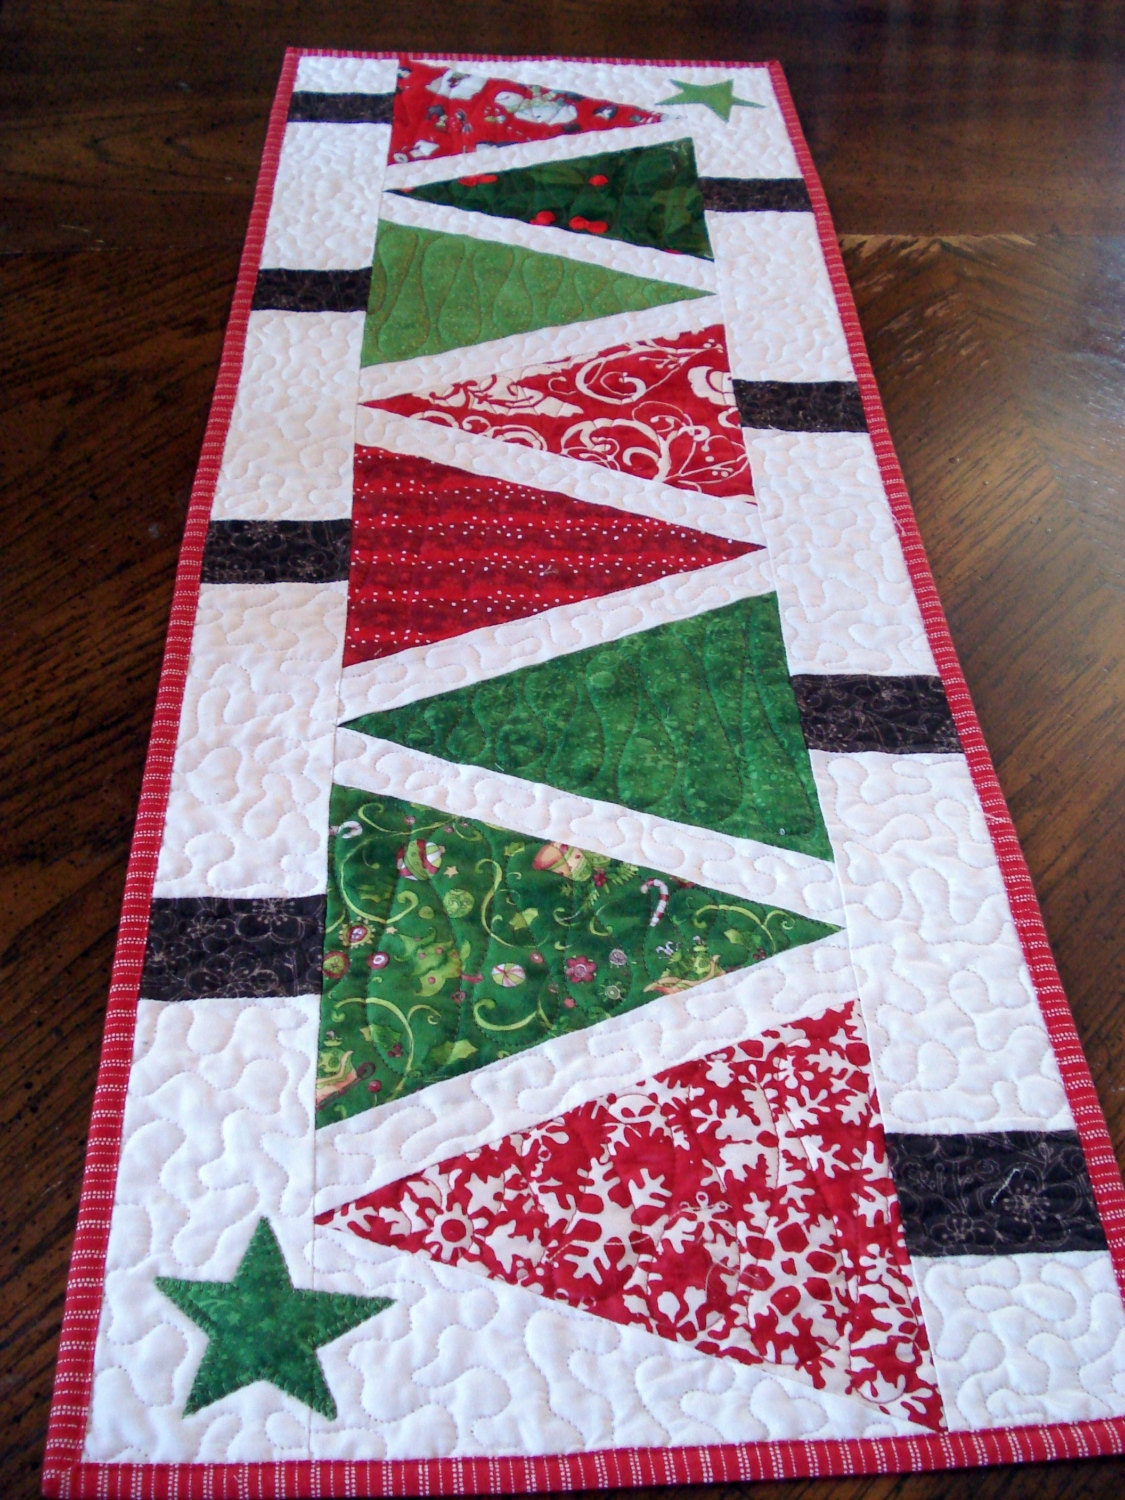 quilted table runner modern christmas trees narrow runner red. Black Bedroom Furniture Sets. Home Design Ideas